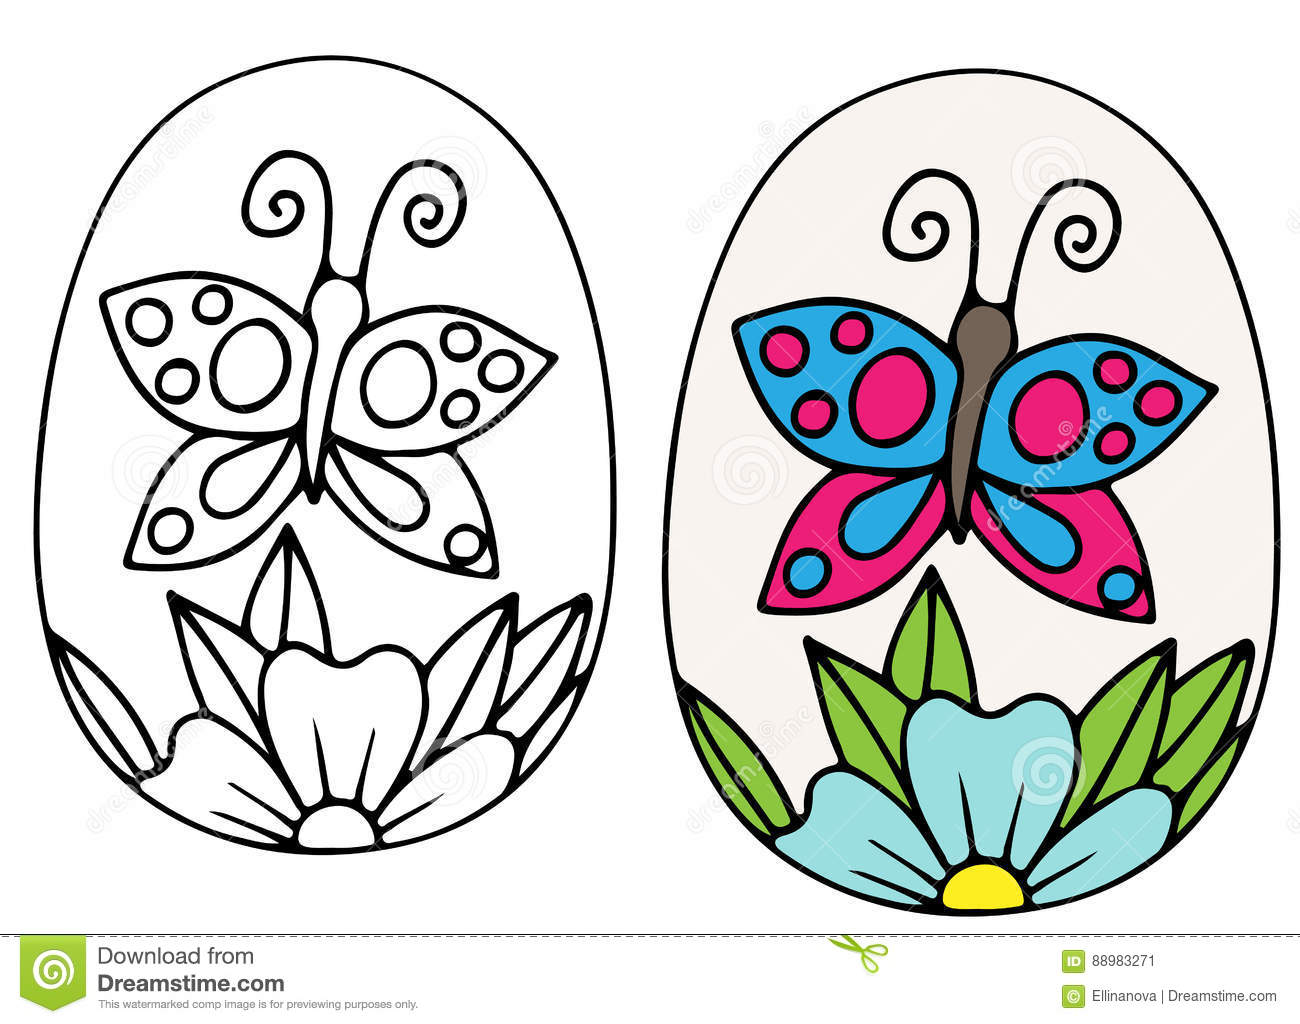 butterfly easter egg coloring pages - photo#9